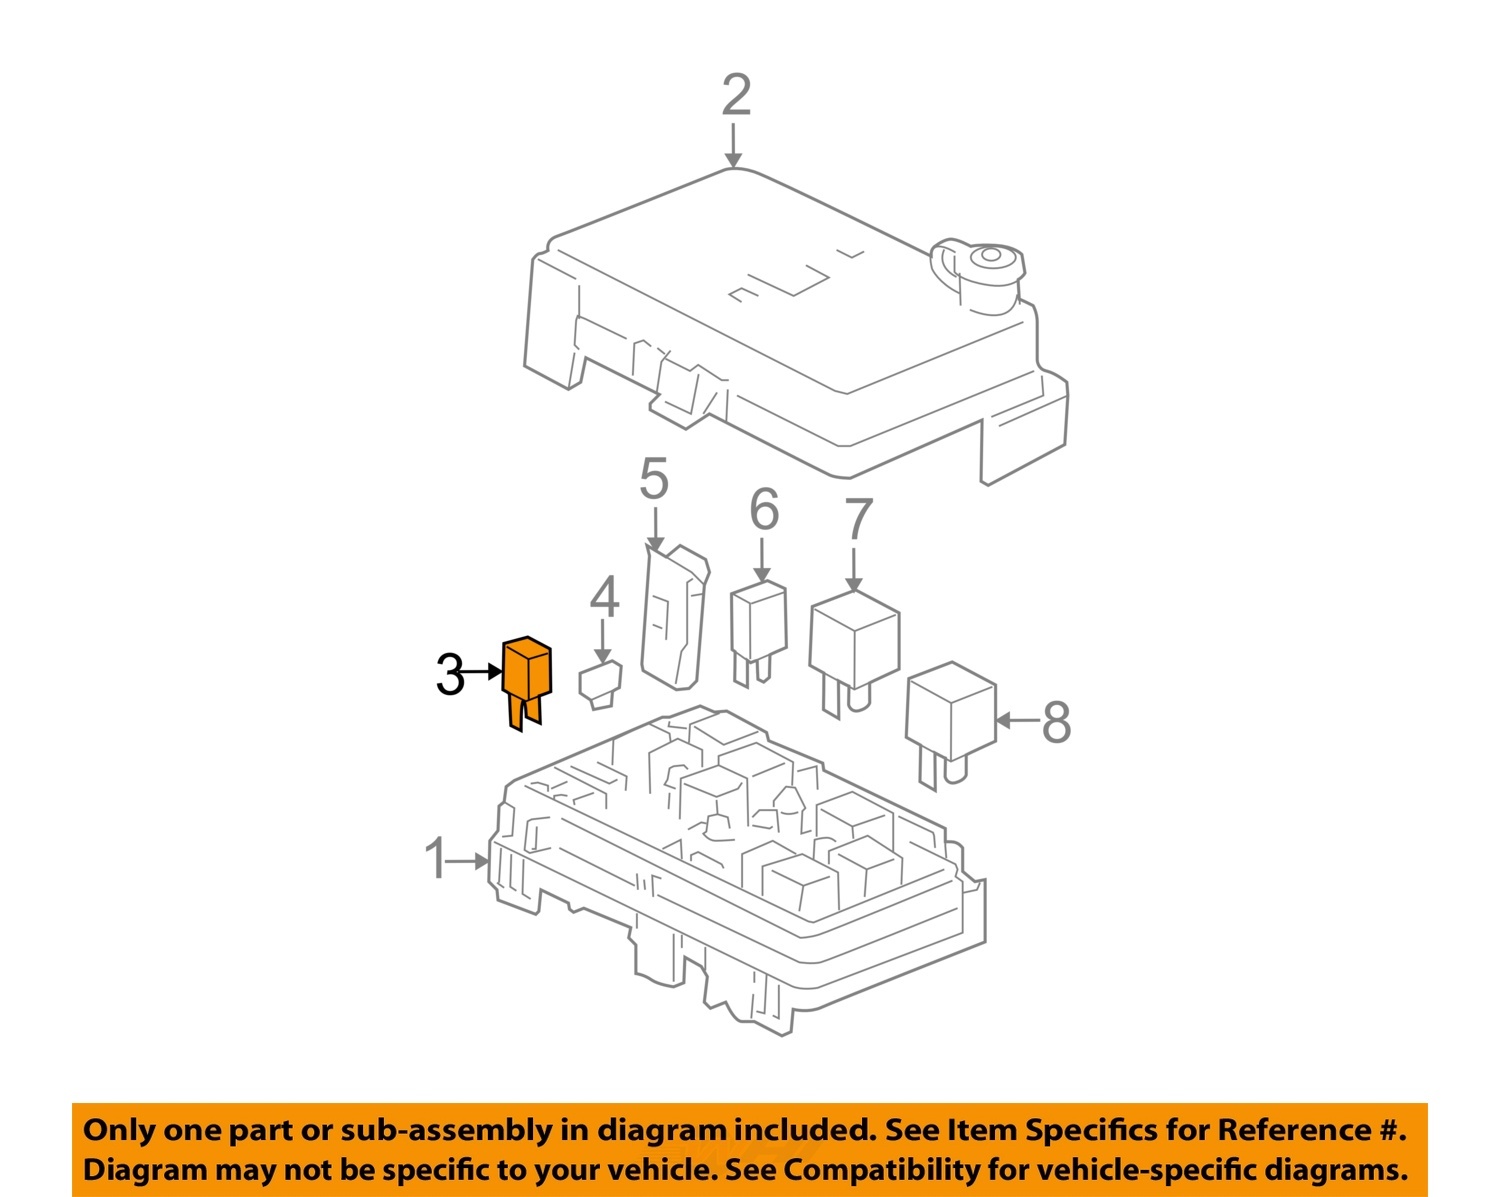 Buy Gm Oem Fuse 88909751 Motorcycle In Clayton Georgia United Box Diagram Mercedes W108